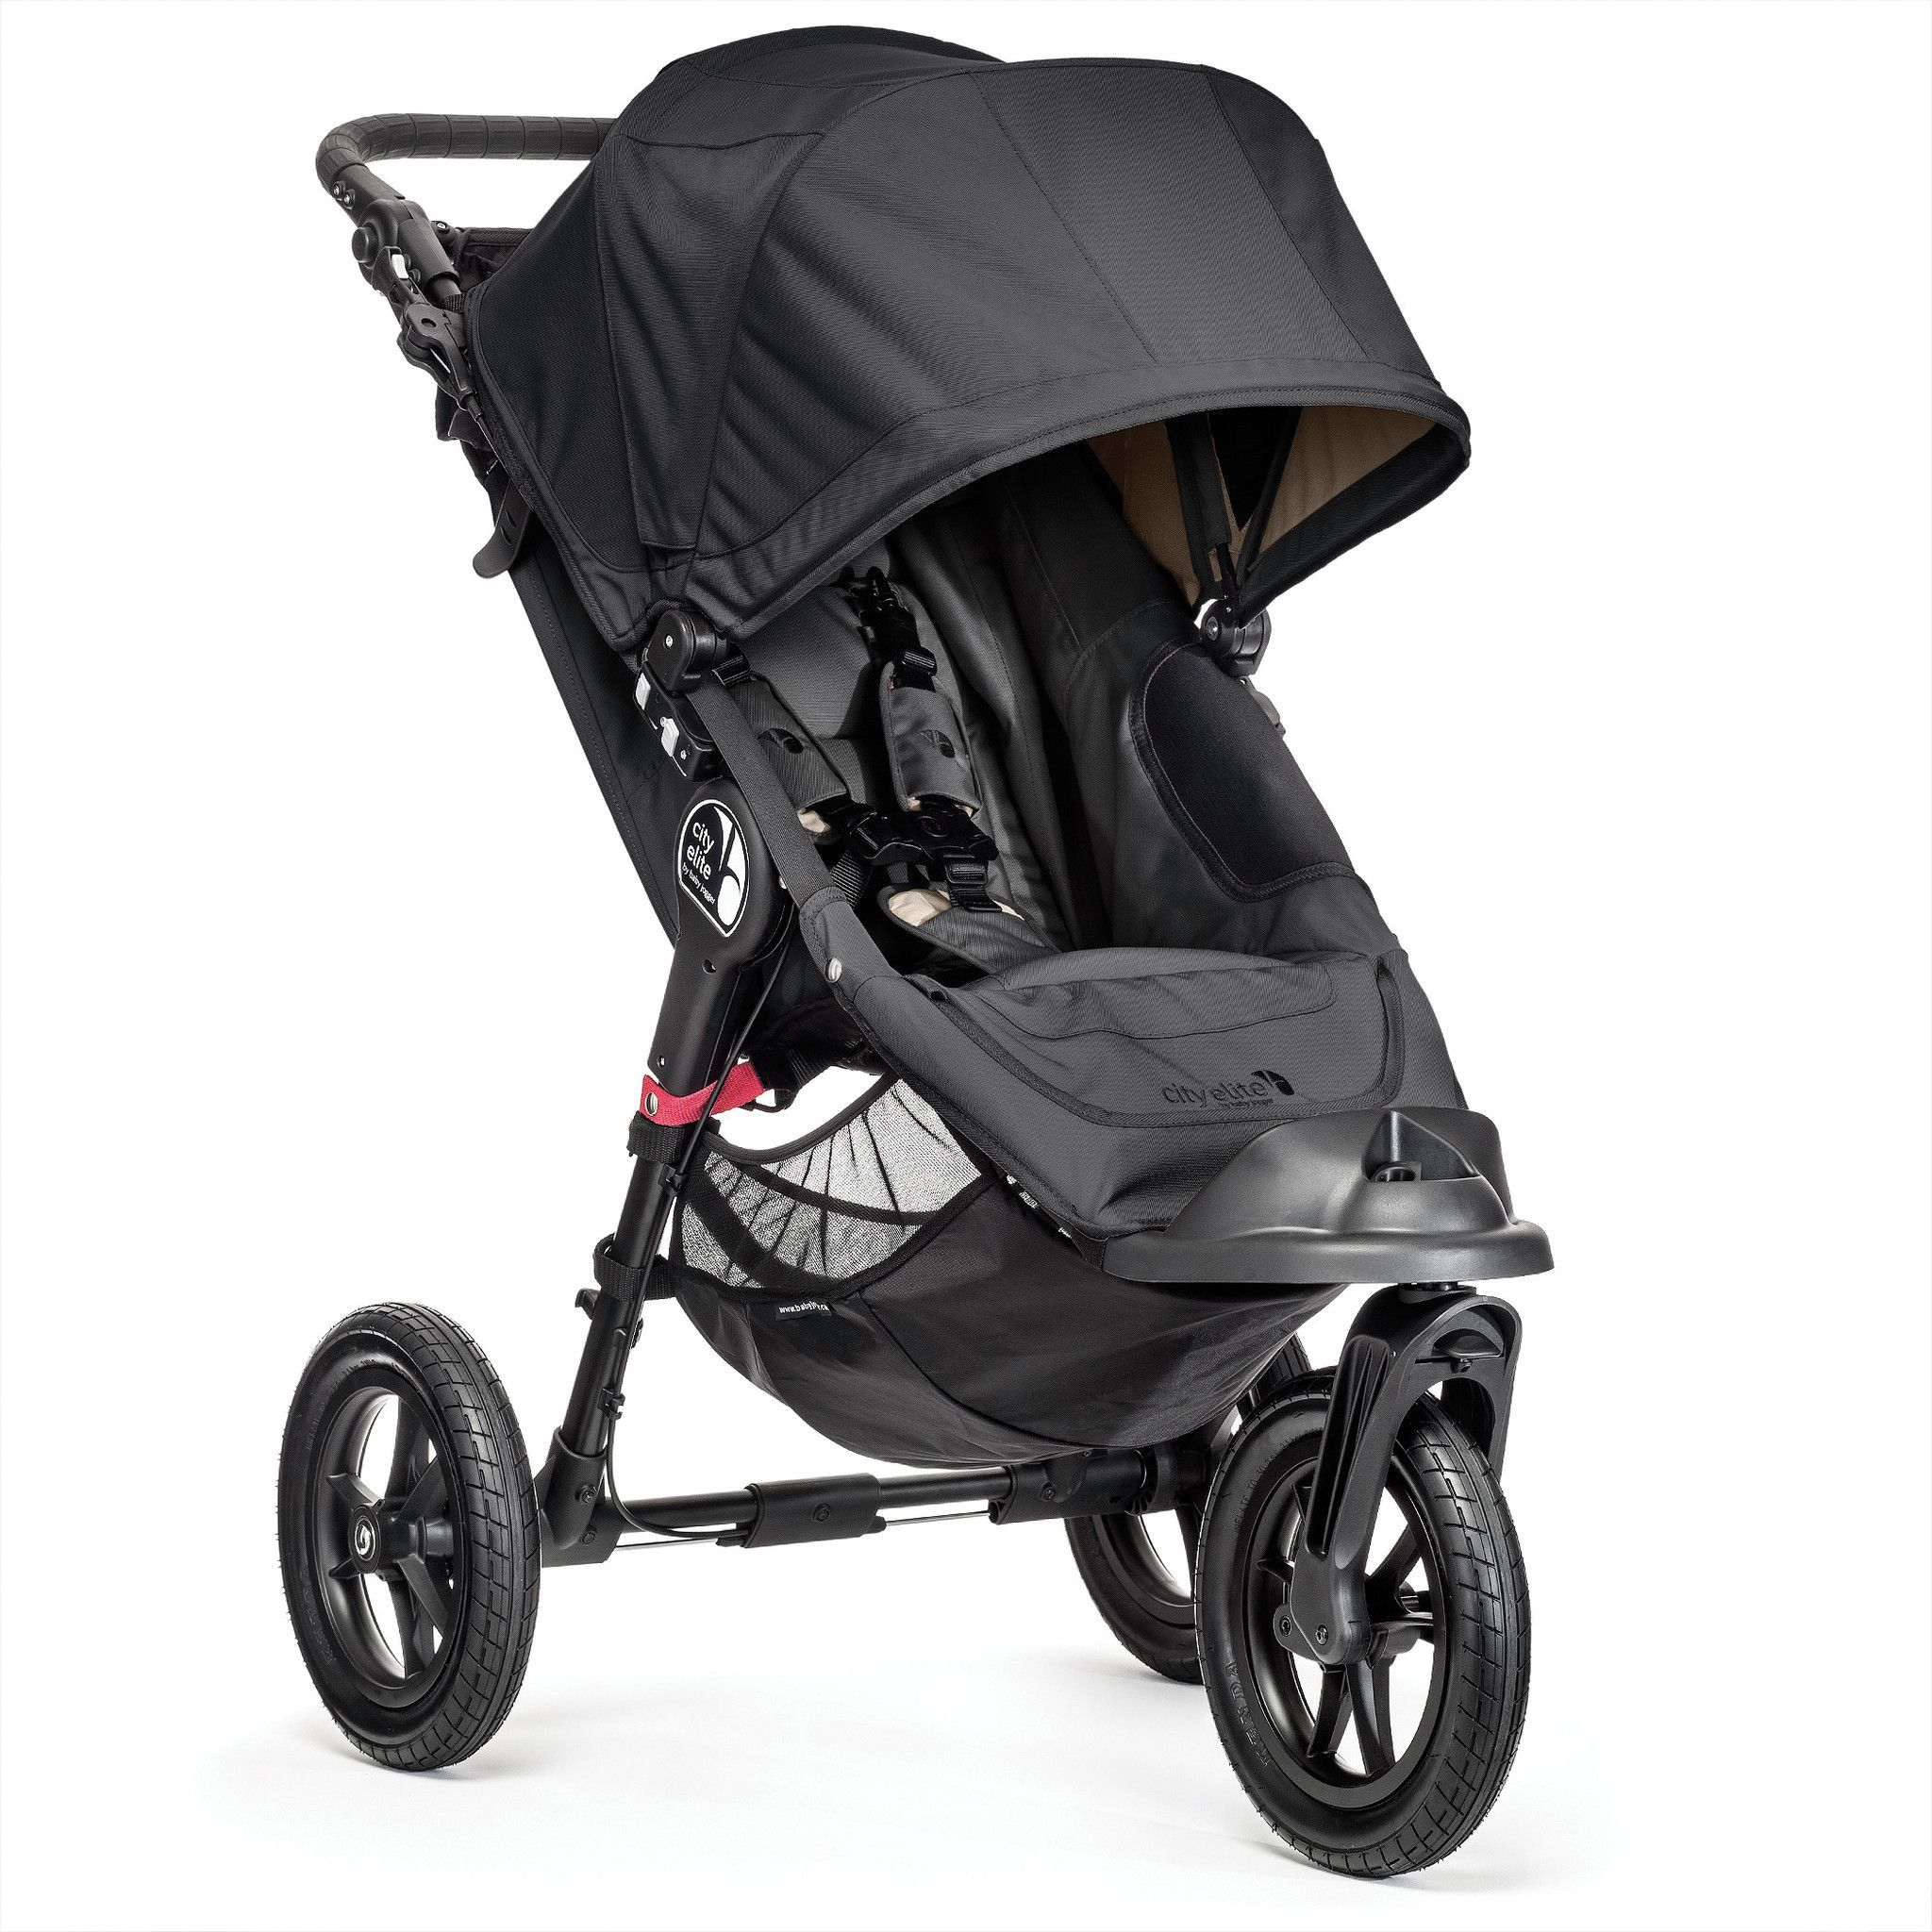 Baby Jogger City Elite provides luxury and fort over any terrain that offers and array of storage and more